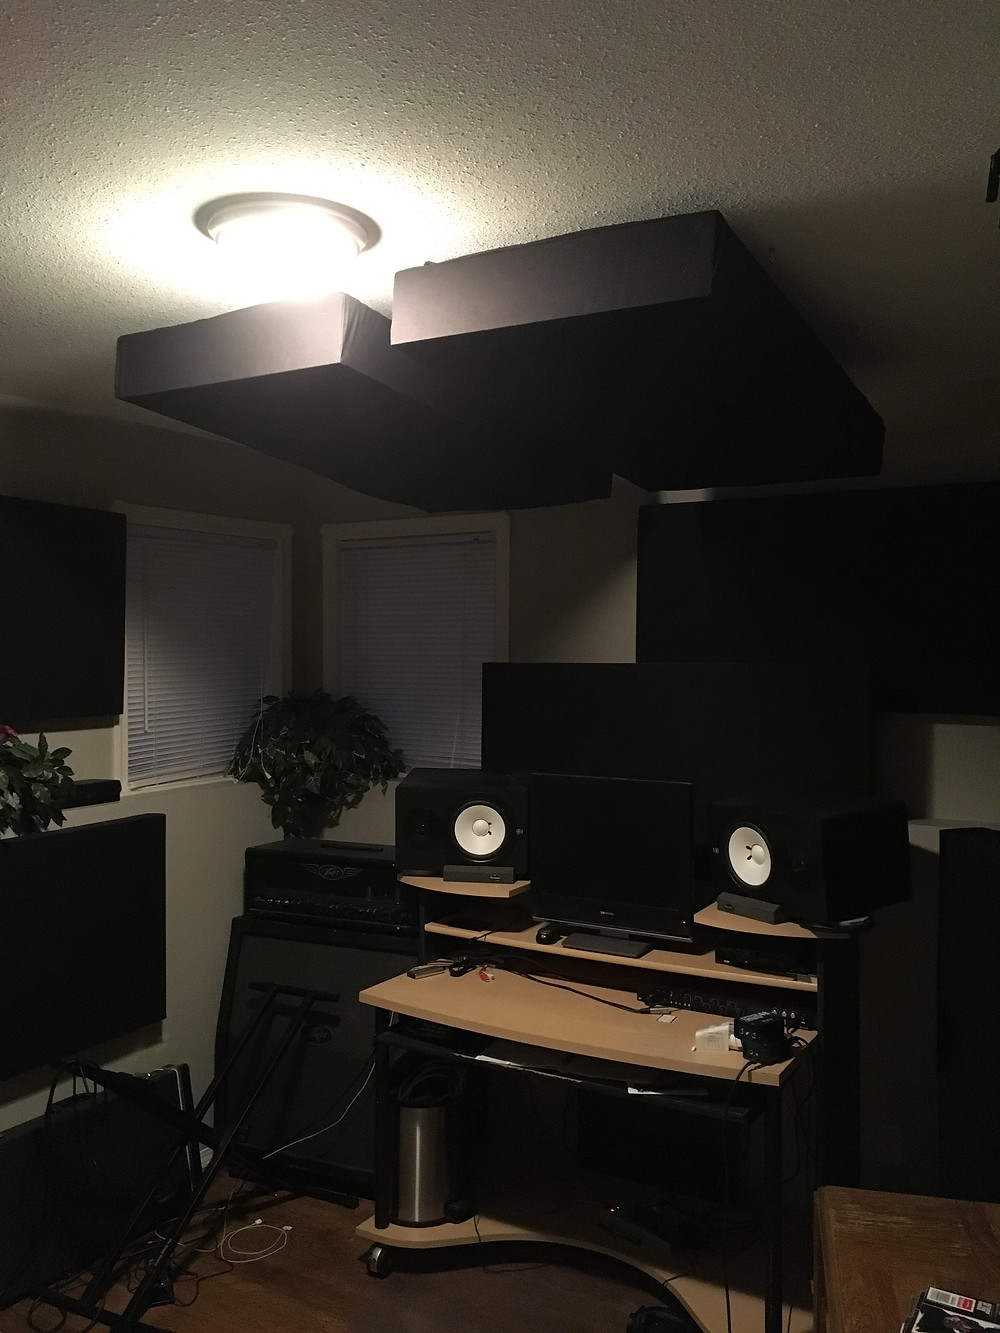 Acoustic Panel Clouds over Desk